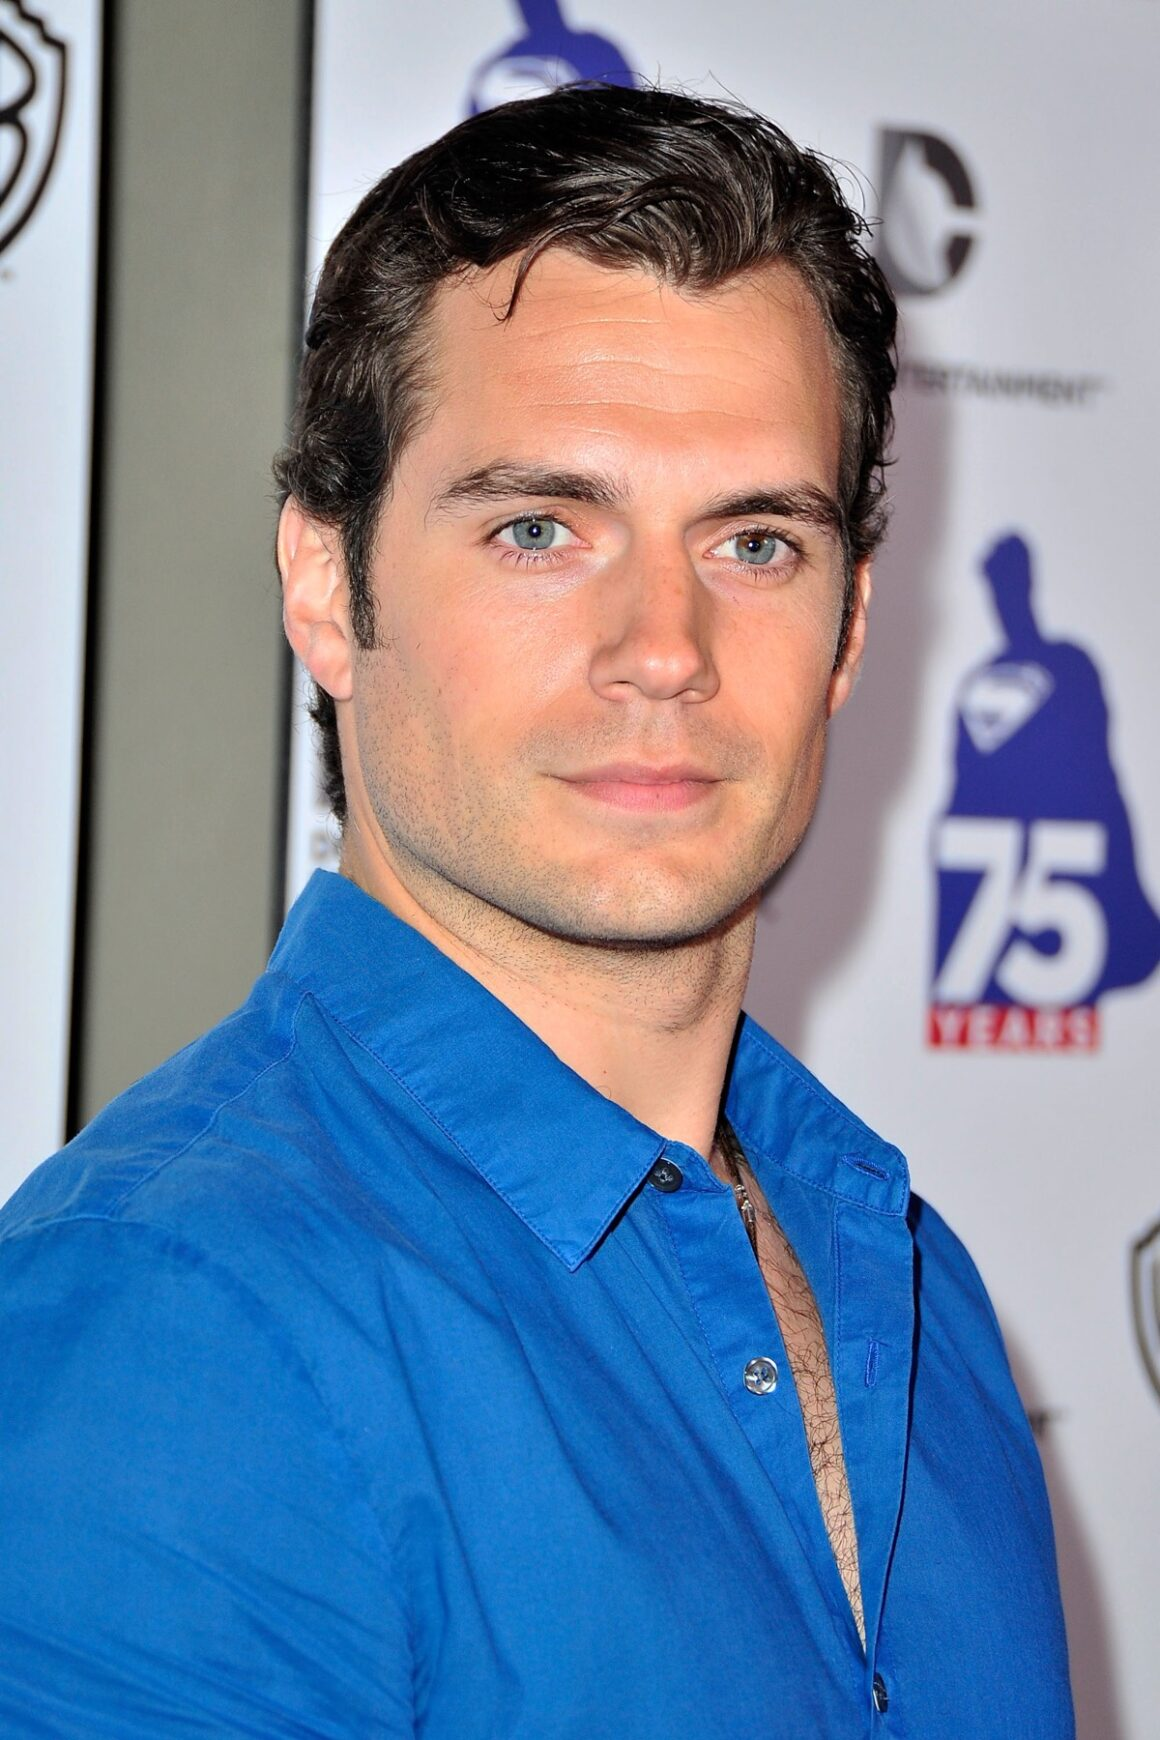 Henry Cavill DC Entertainment And Warner Bros. Host Superman 75 Party At San Diego Comic-Con